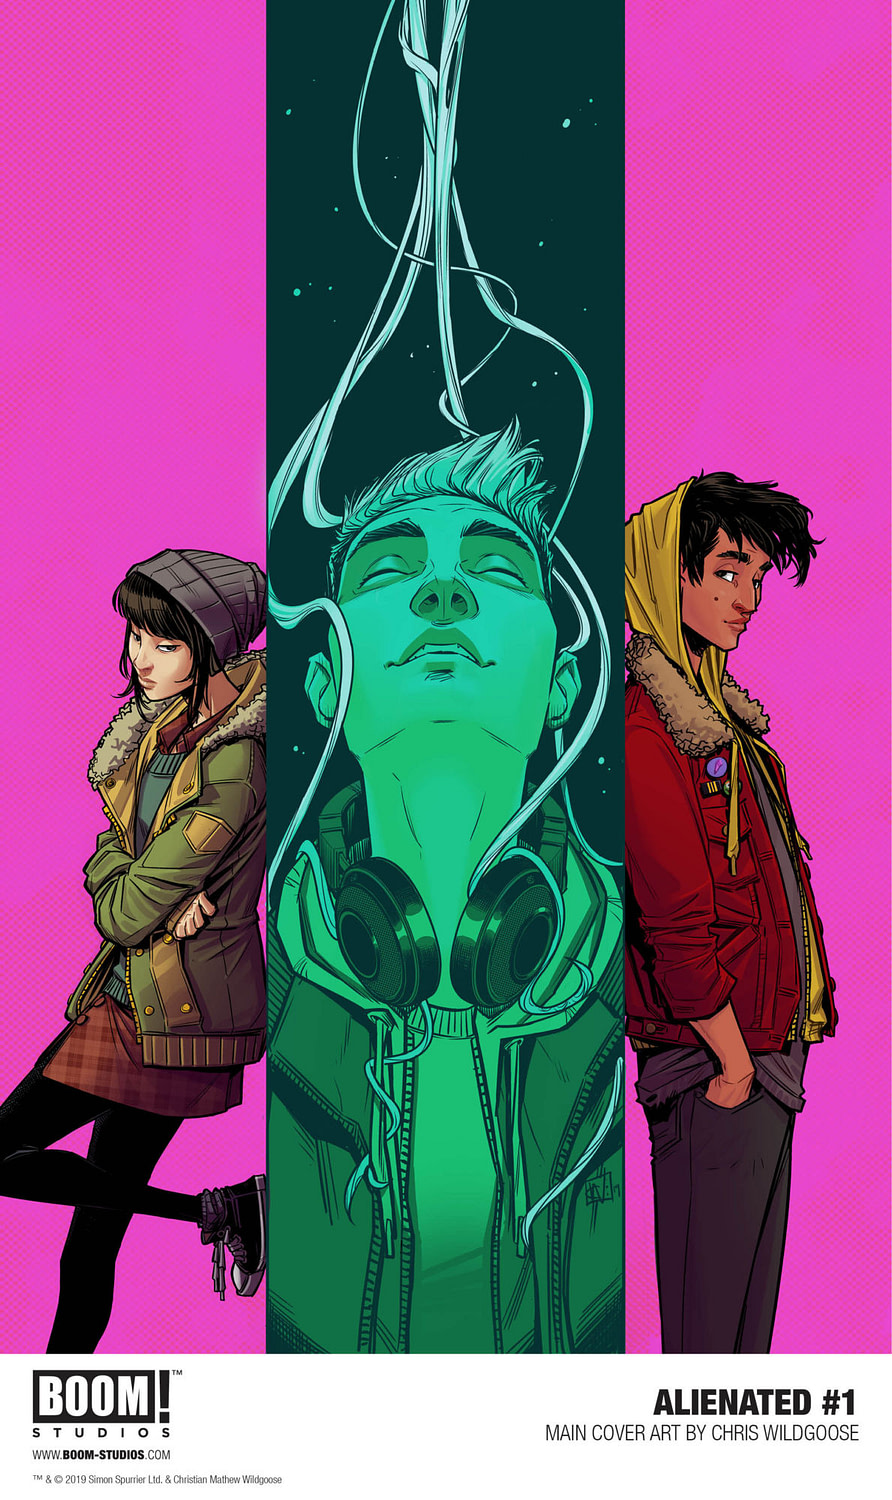 BOOM! Announces Alienated from Si Spurrier and Chris Wildgoose at NYCC